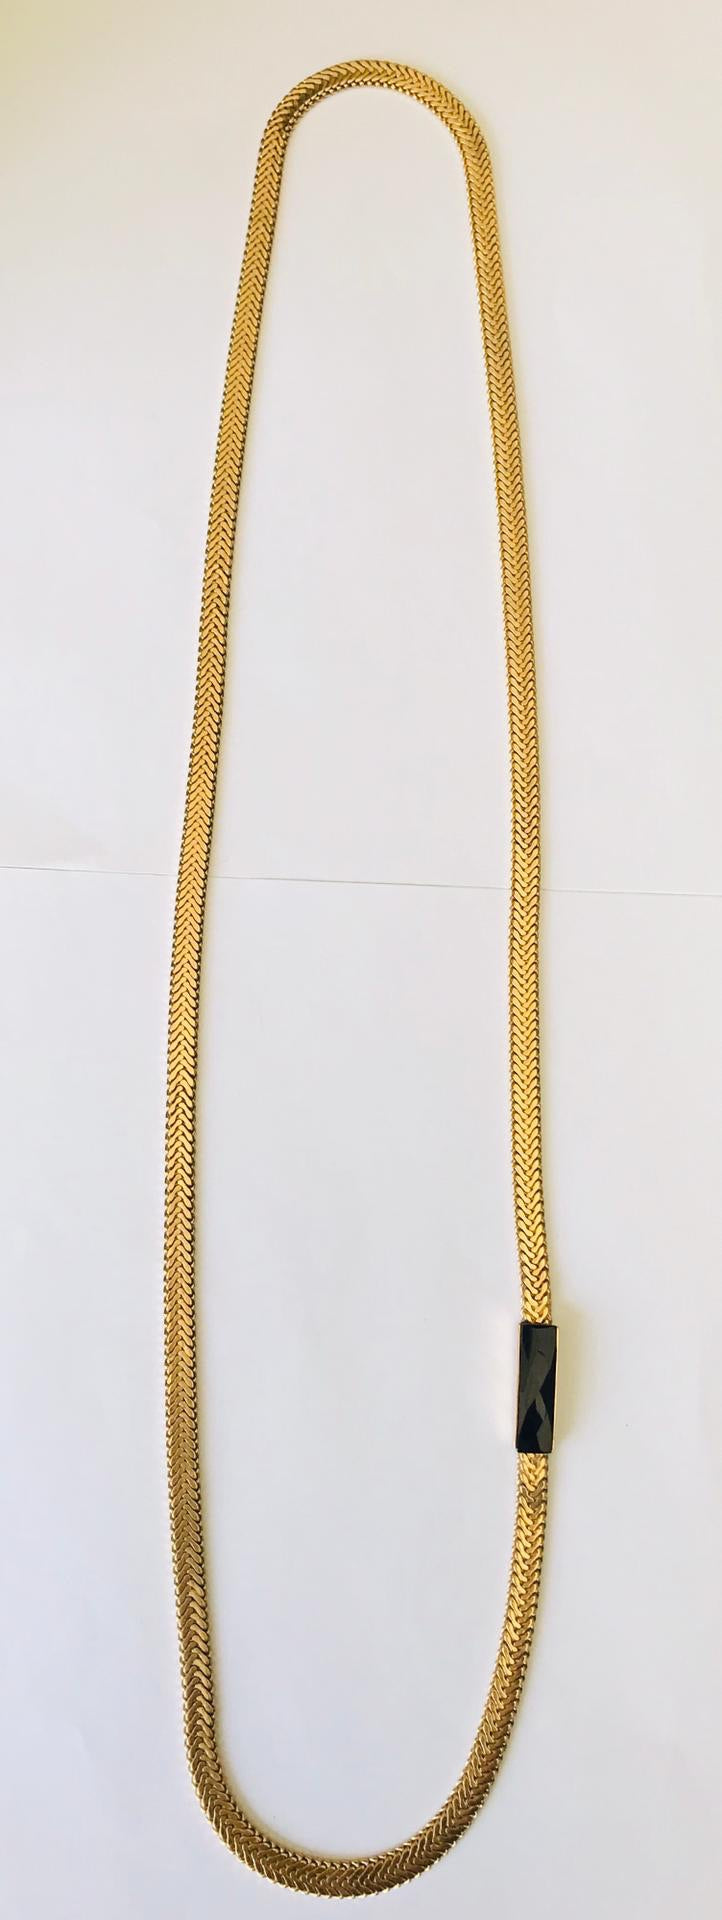 Wouters & Hendrix - long gold plated necklace with faceted onyx stone